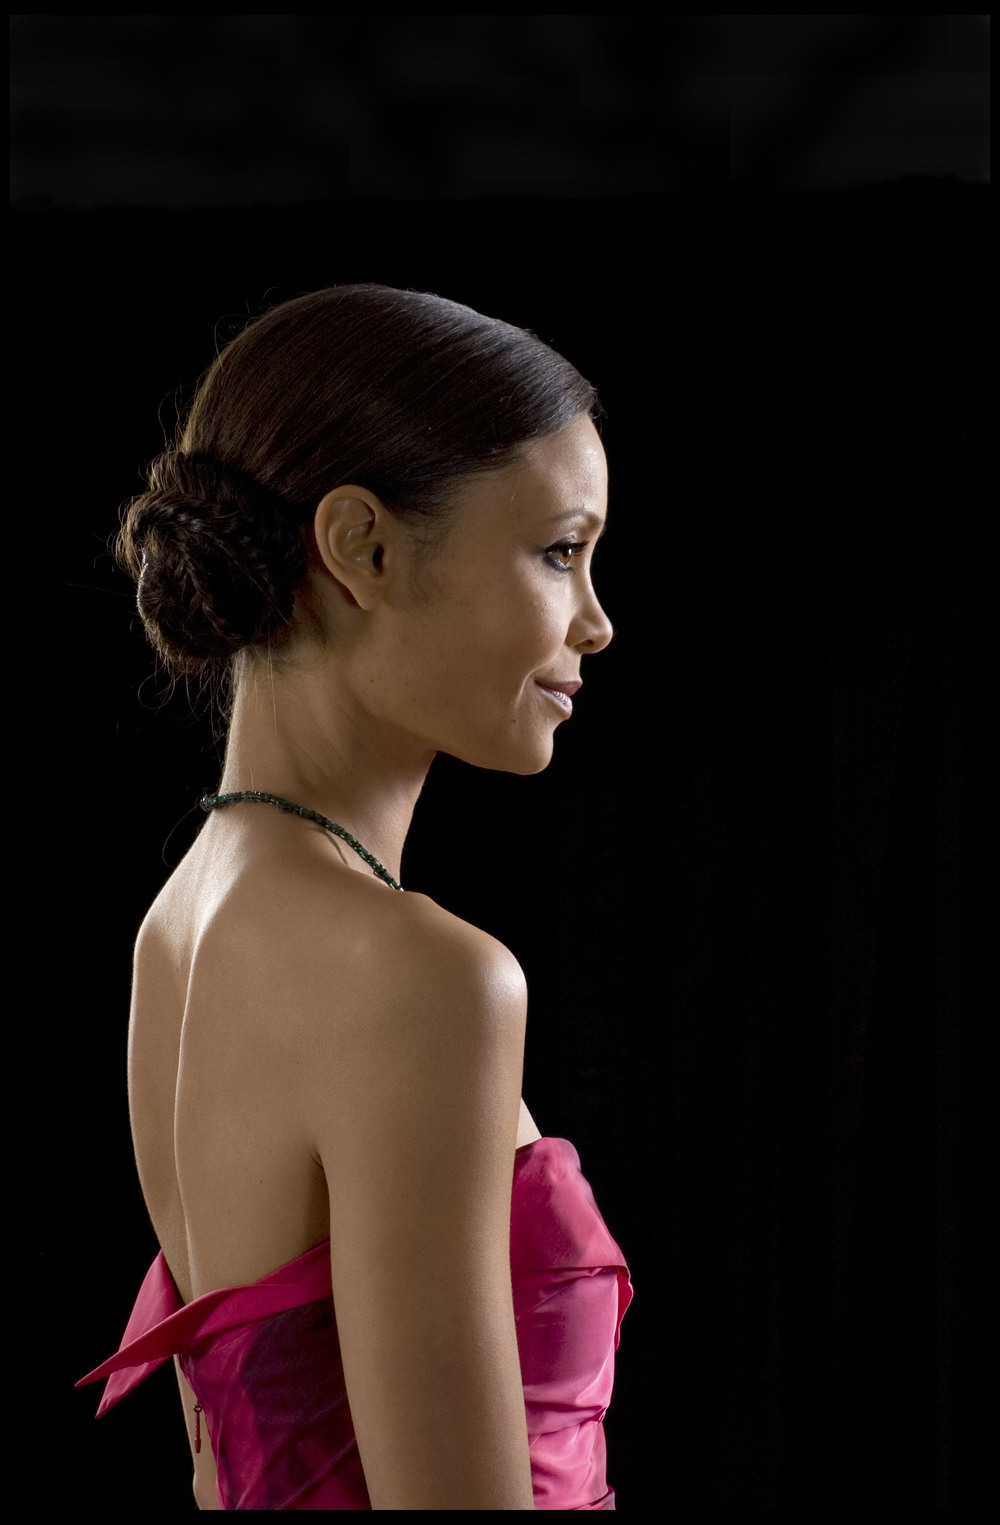 Thandie Newton, actress